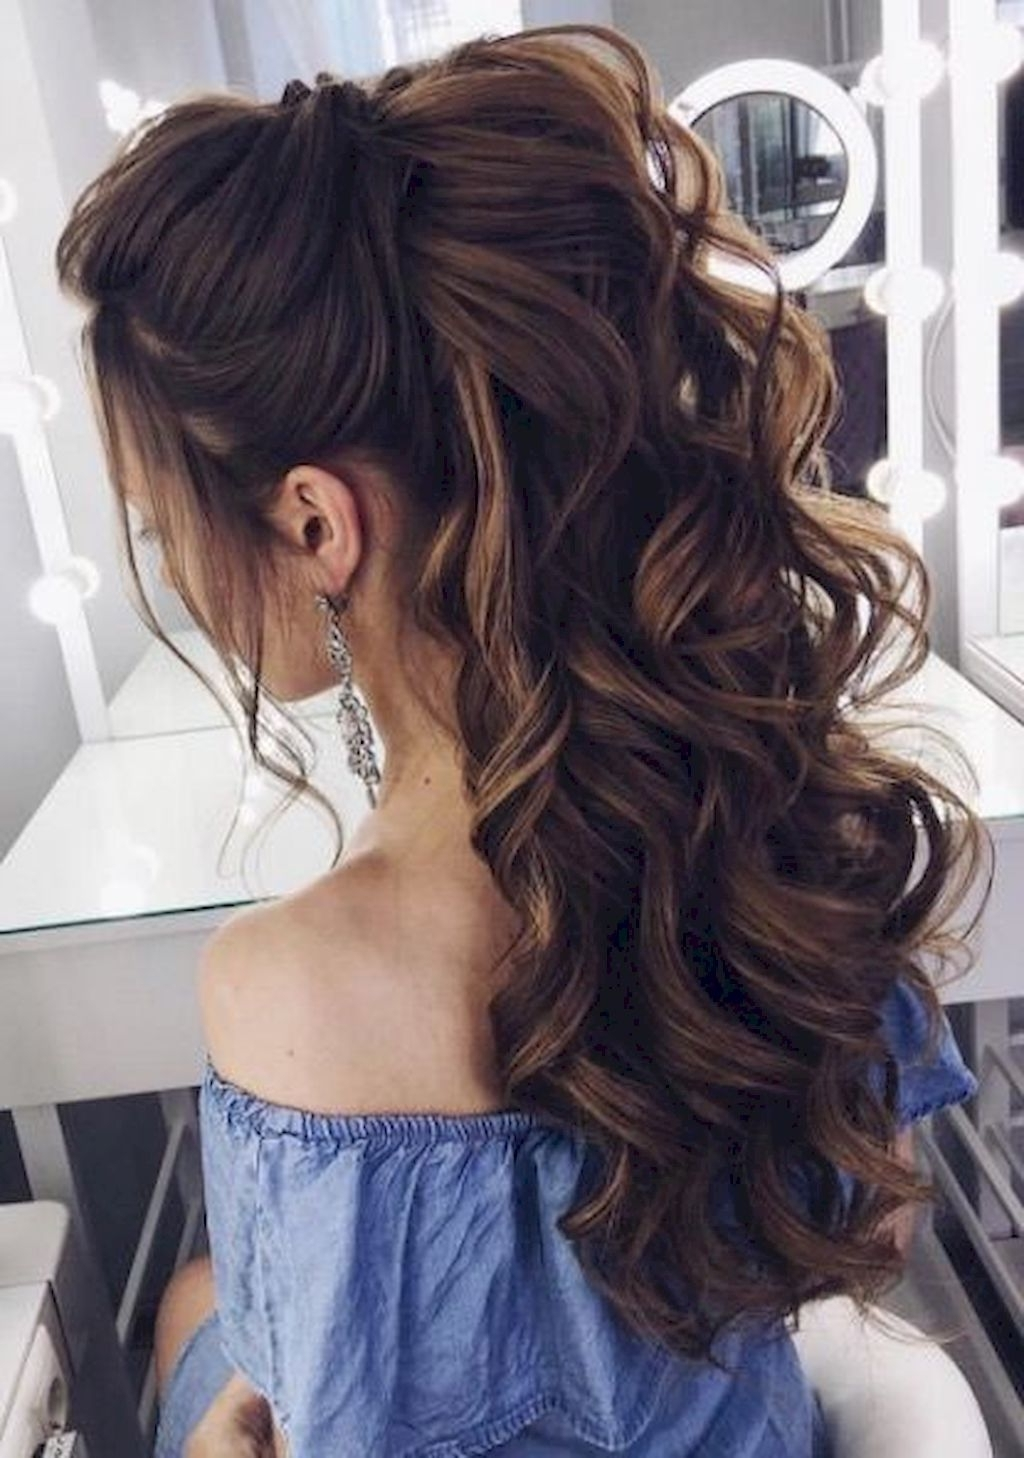 Newest Wedding Hairstyles With Long Hair Throughout Adorable 96 Bridal Wedding Hairstyles For Long Hair That Will (View 10 of 15)